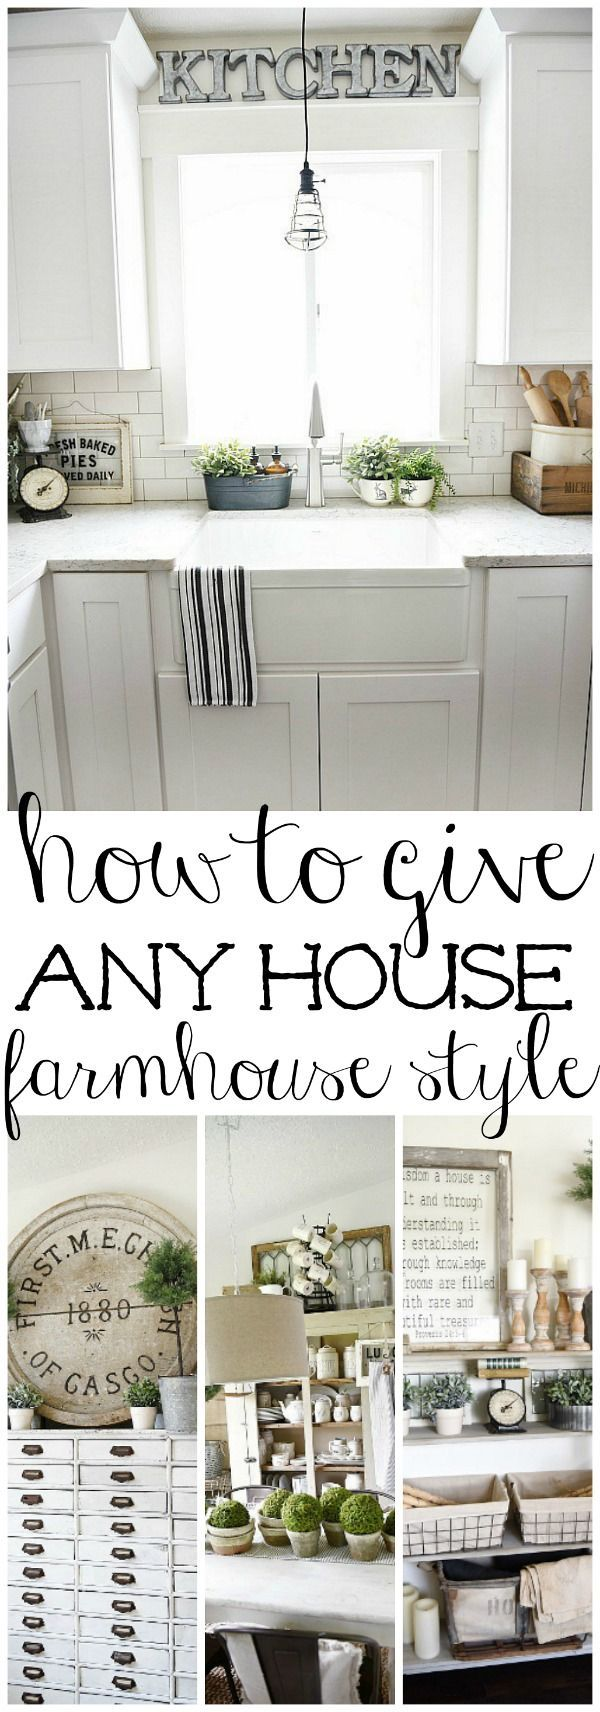 How To Give Any House Farmhouse Style. Kitchen LettersKitchen ...